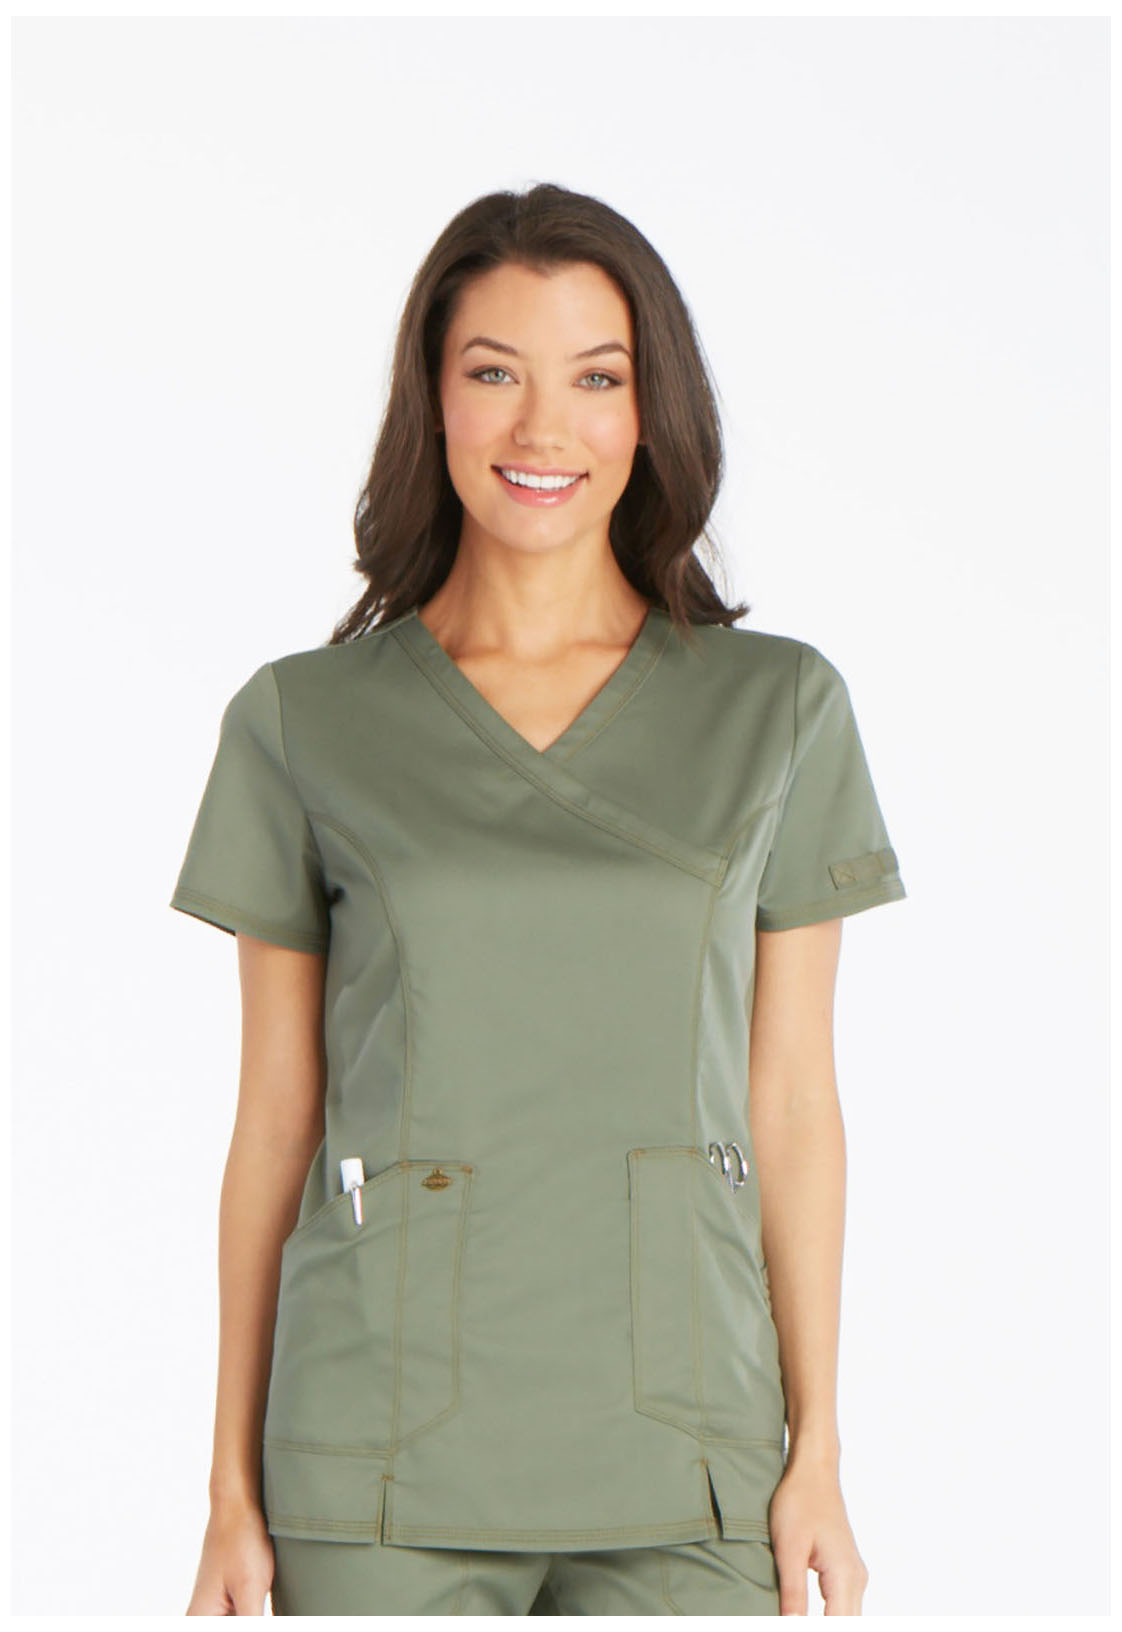 6472ae34366 Essence Mock Wrap Top in Olive DK804-OLV from Scrubs Express